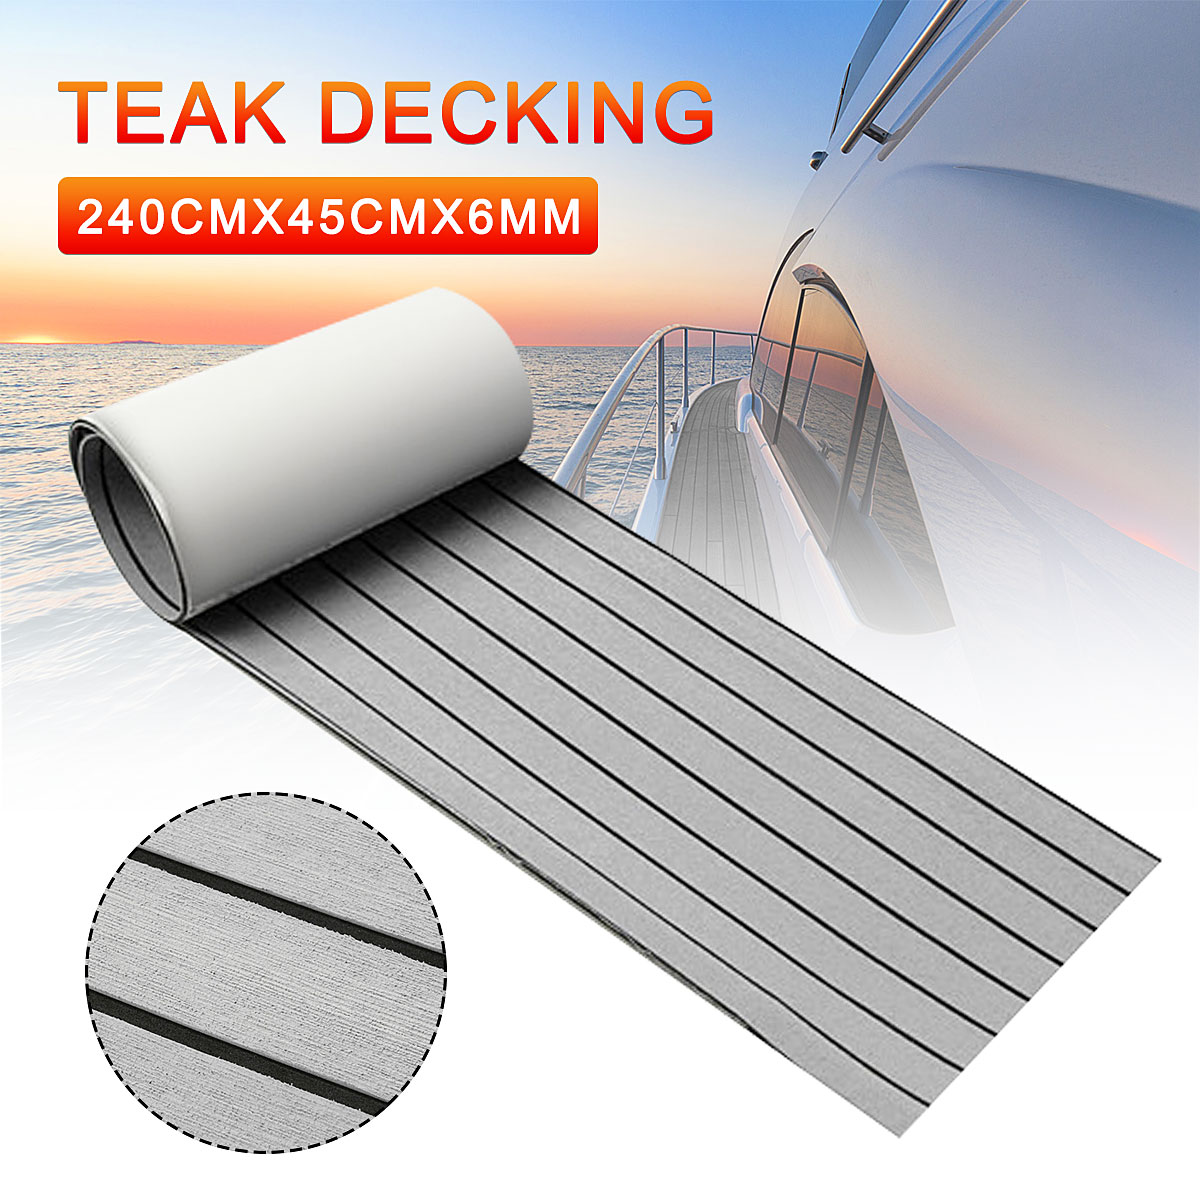 6MM Self Adhesive EVA Foam Teak Sheet Marine Boat Yacht Synthetic Decking Foam Floor Mat Flooring Grey Black 240*45cm